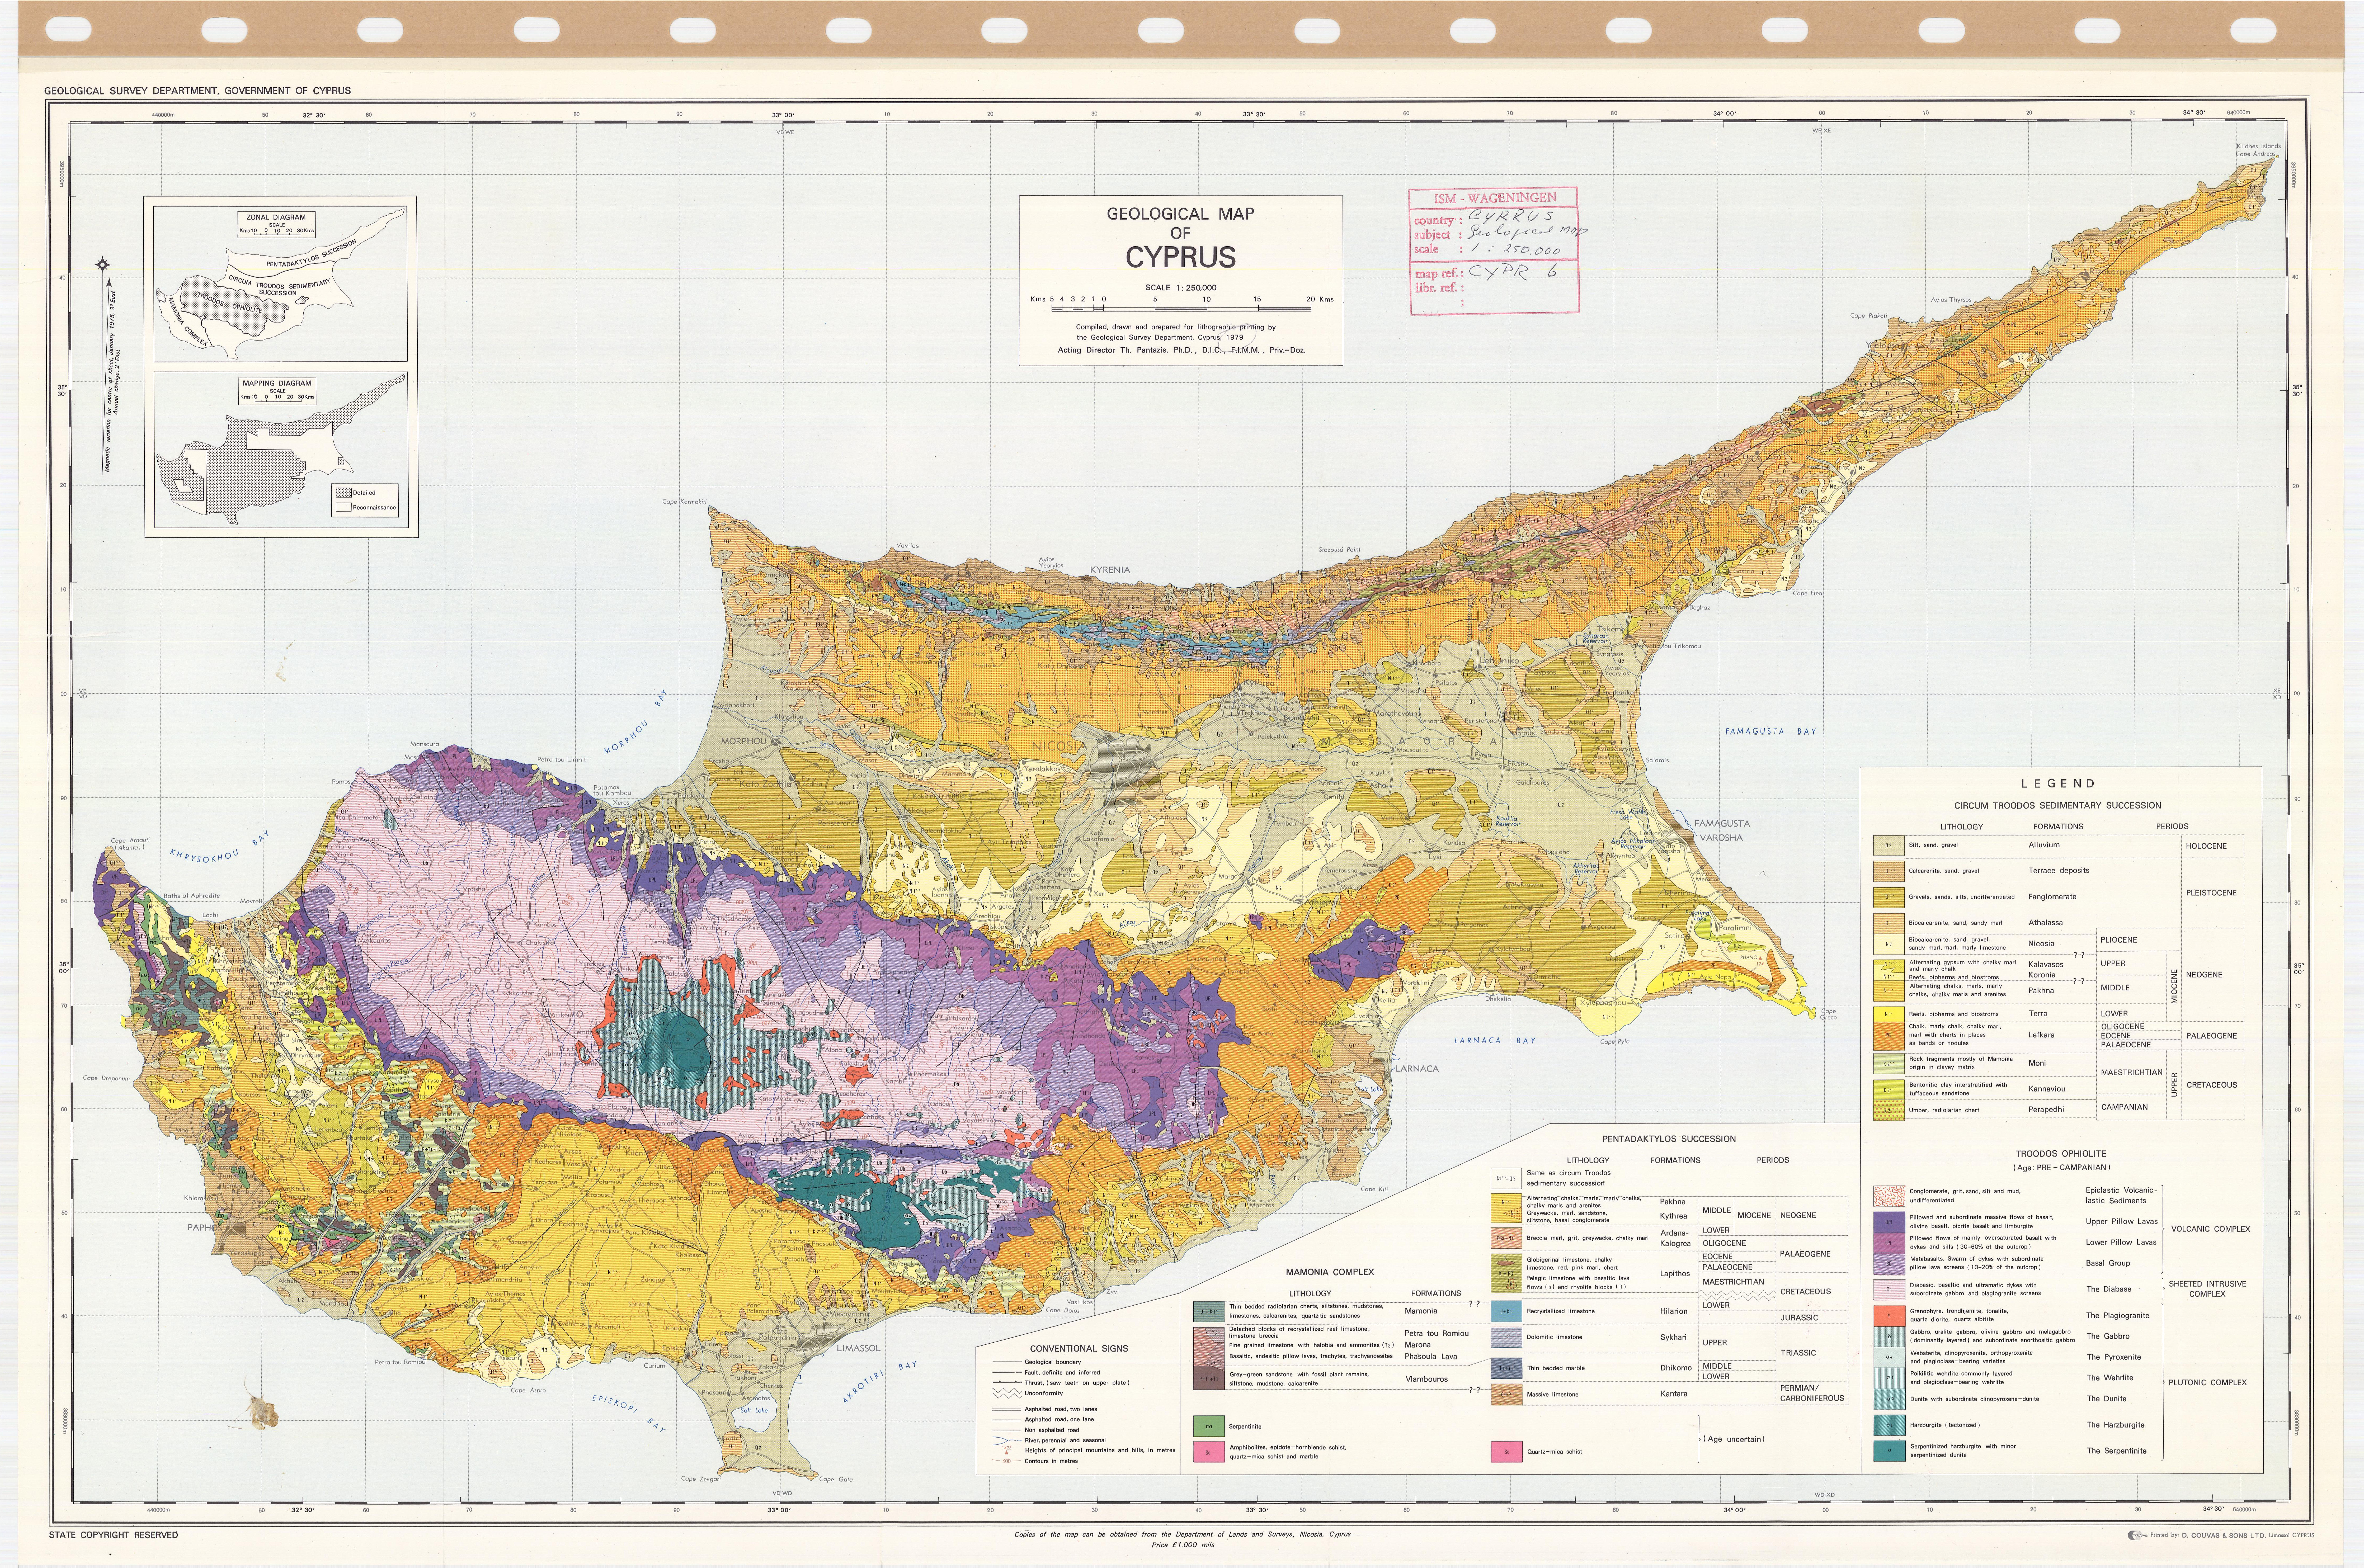 Geological Map of Cyprus. - ESDAC - European Commission